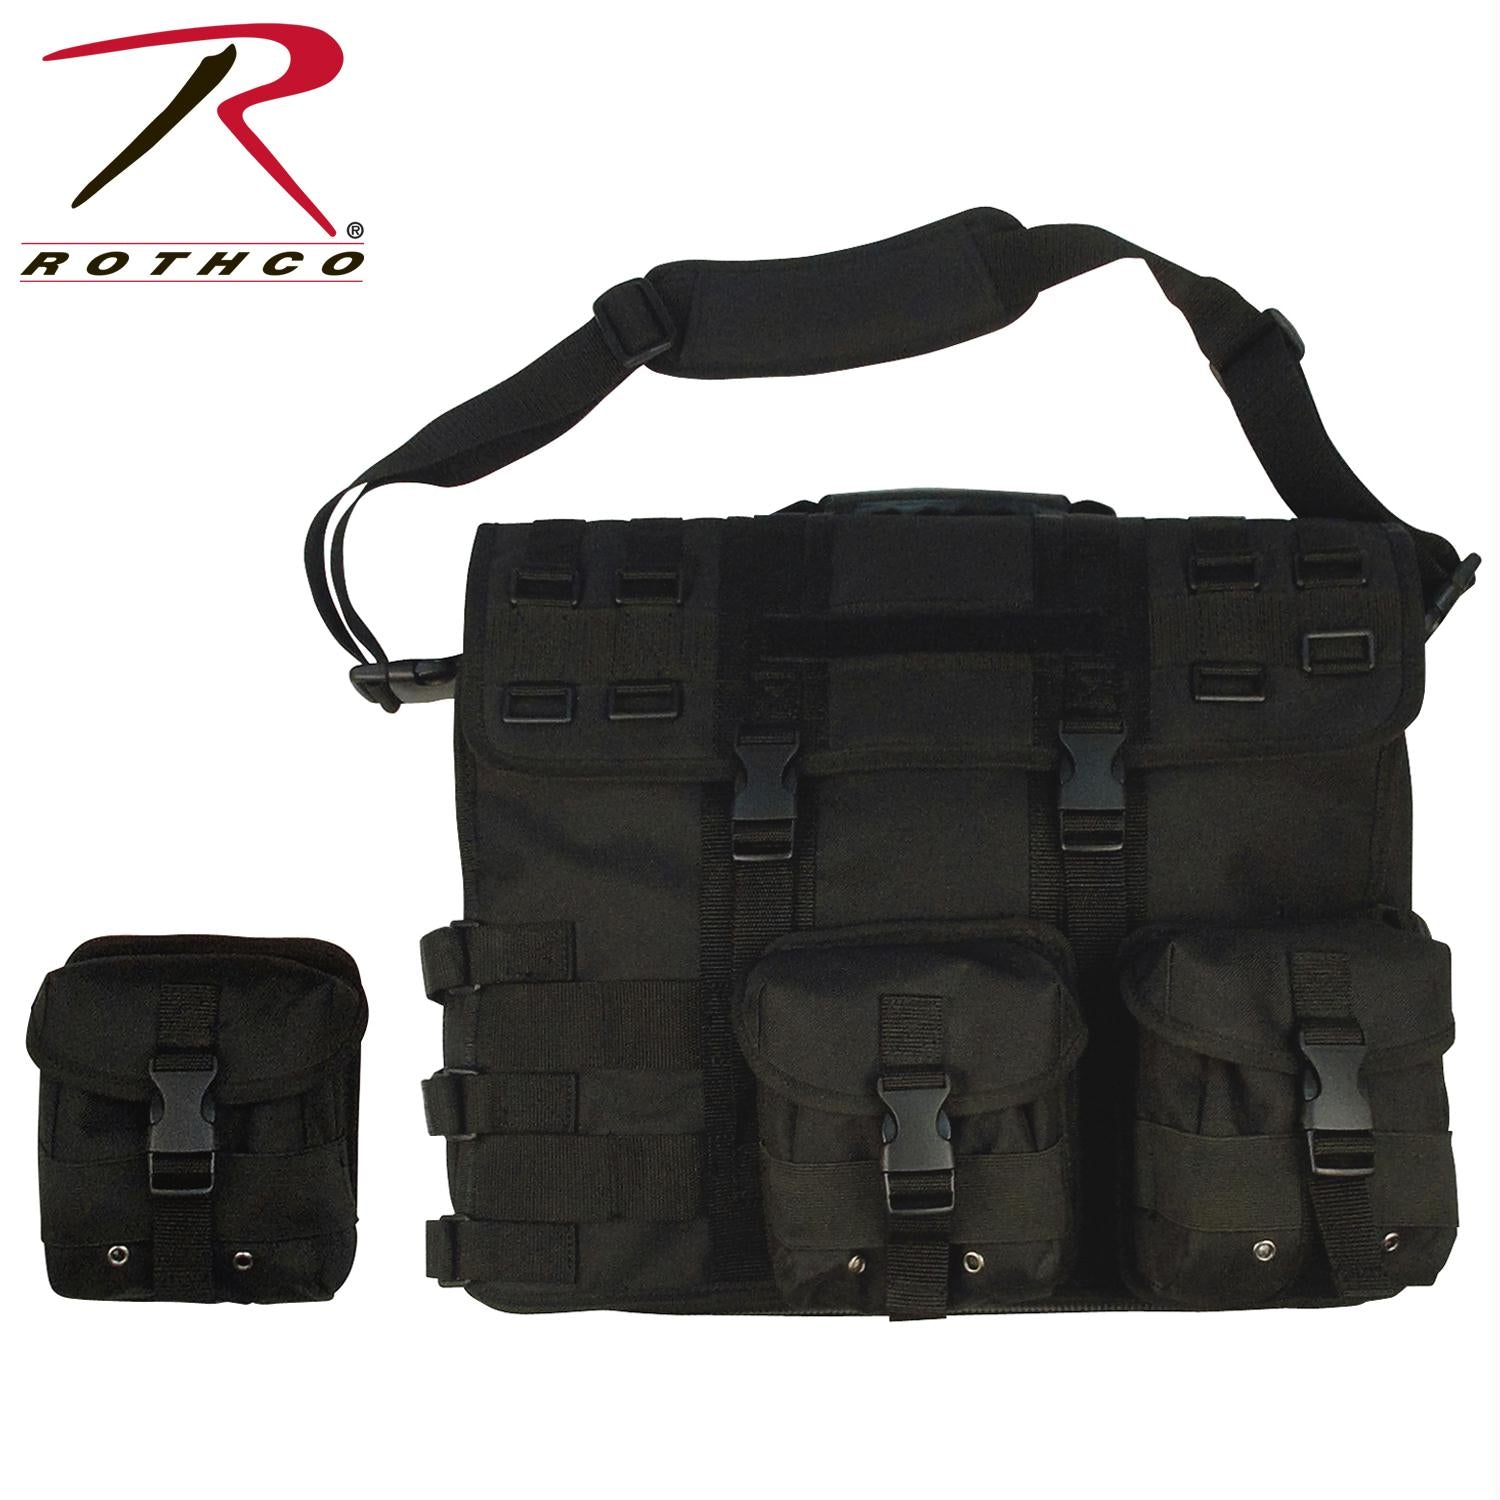 Rothco MOLLE Tactical Laptop Briefcase